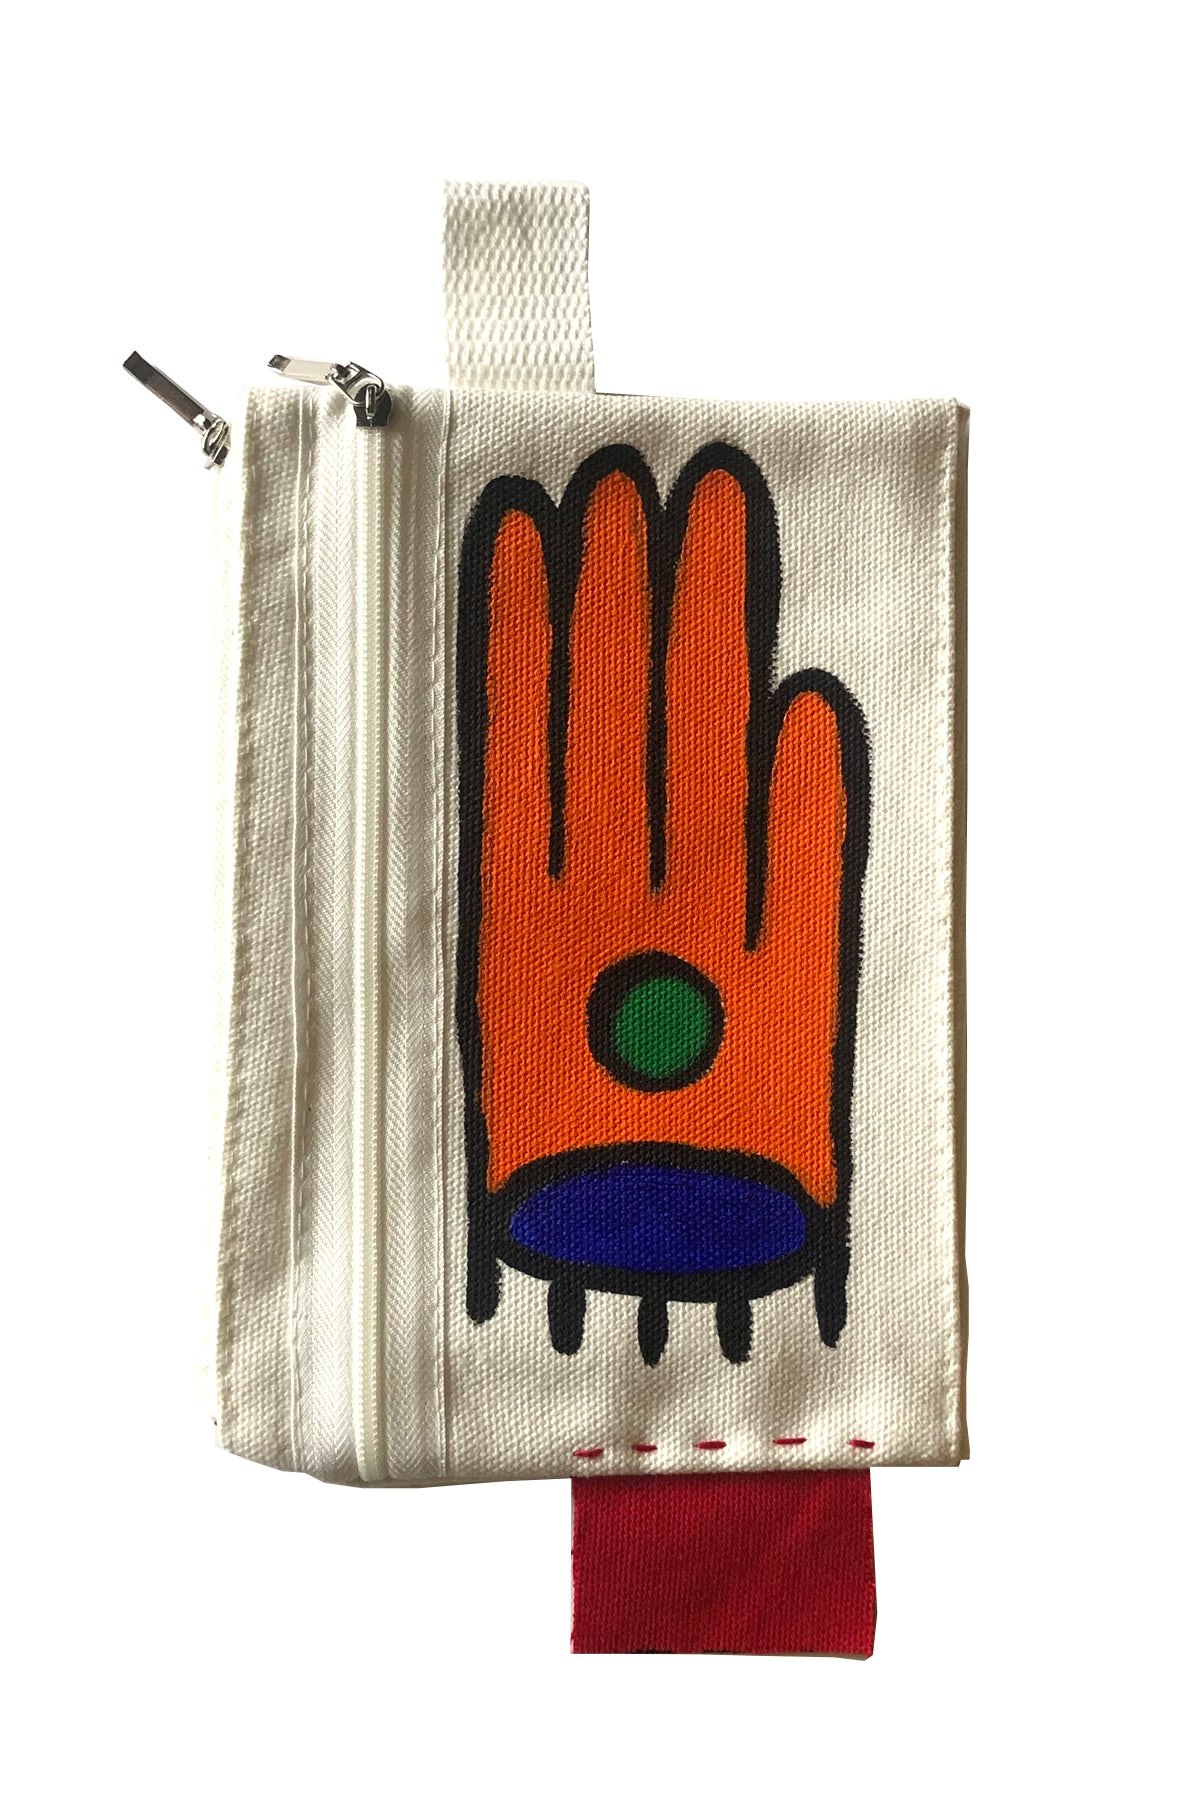 𝙏𝙀𝘼𝙍𝙎 𝙄𝙉 𝙔𝙊𝙐𝙍 𝙃𝘼𝙉𝘿𝙎 :: 1-800-FASHIN :: HAND PAINTED ZIPPER POUCH